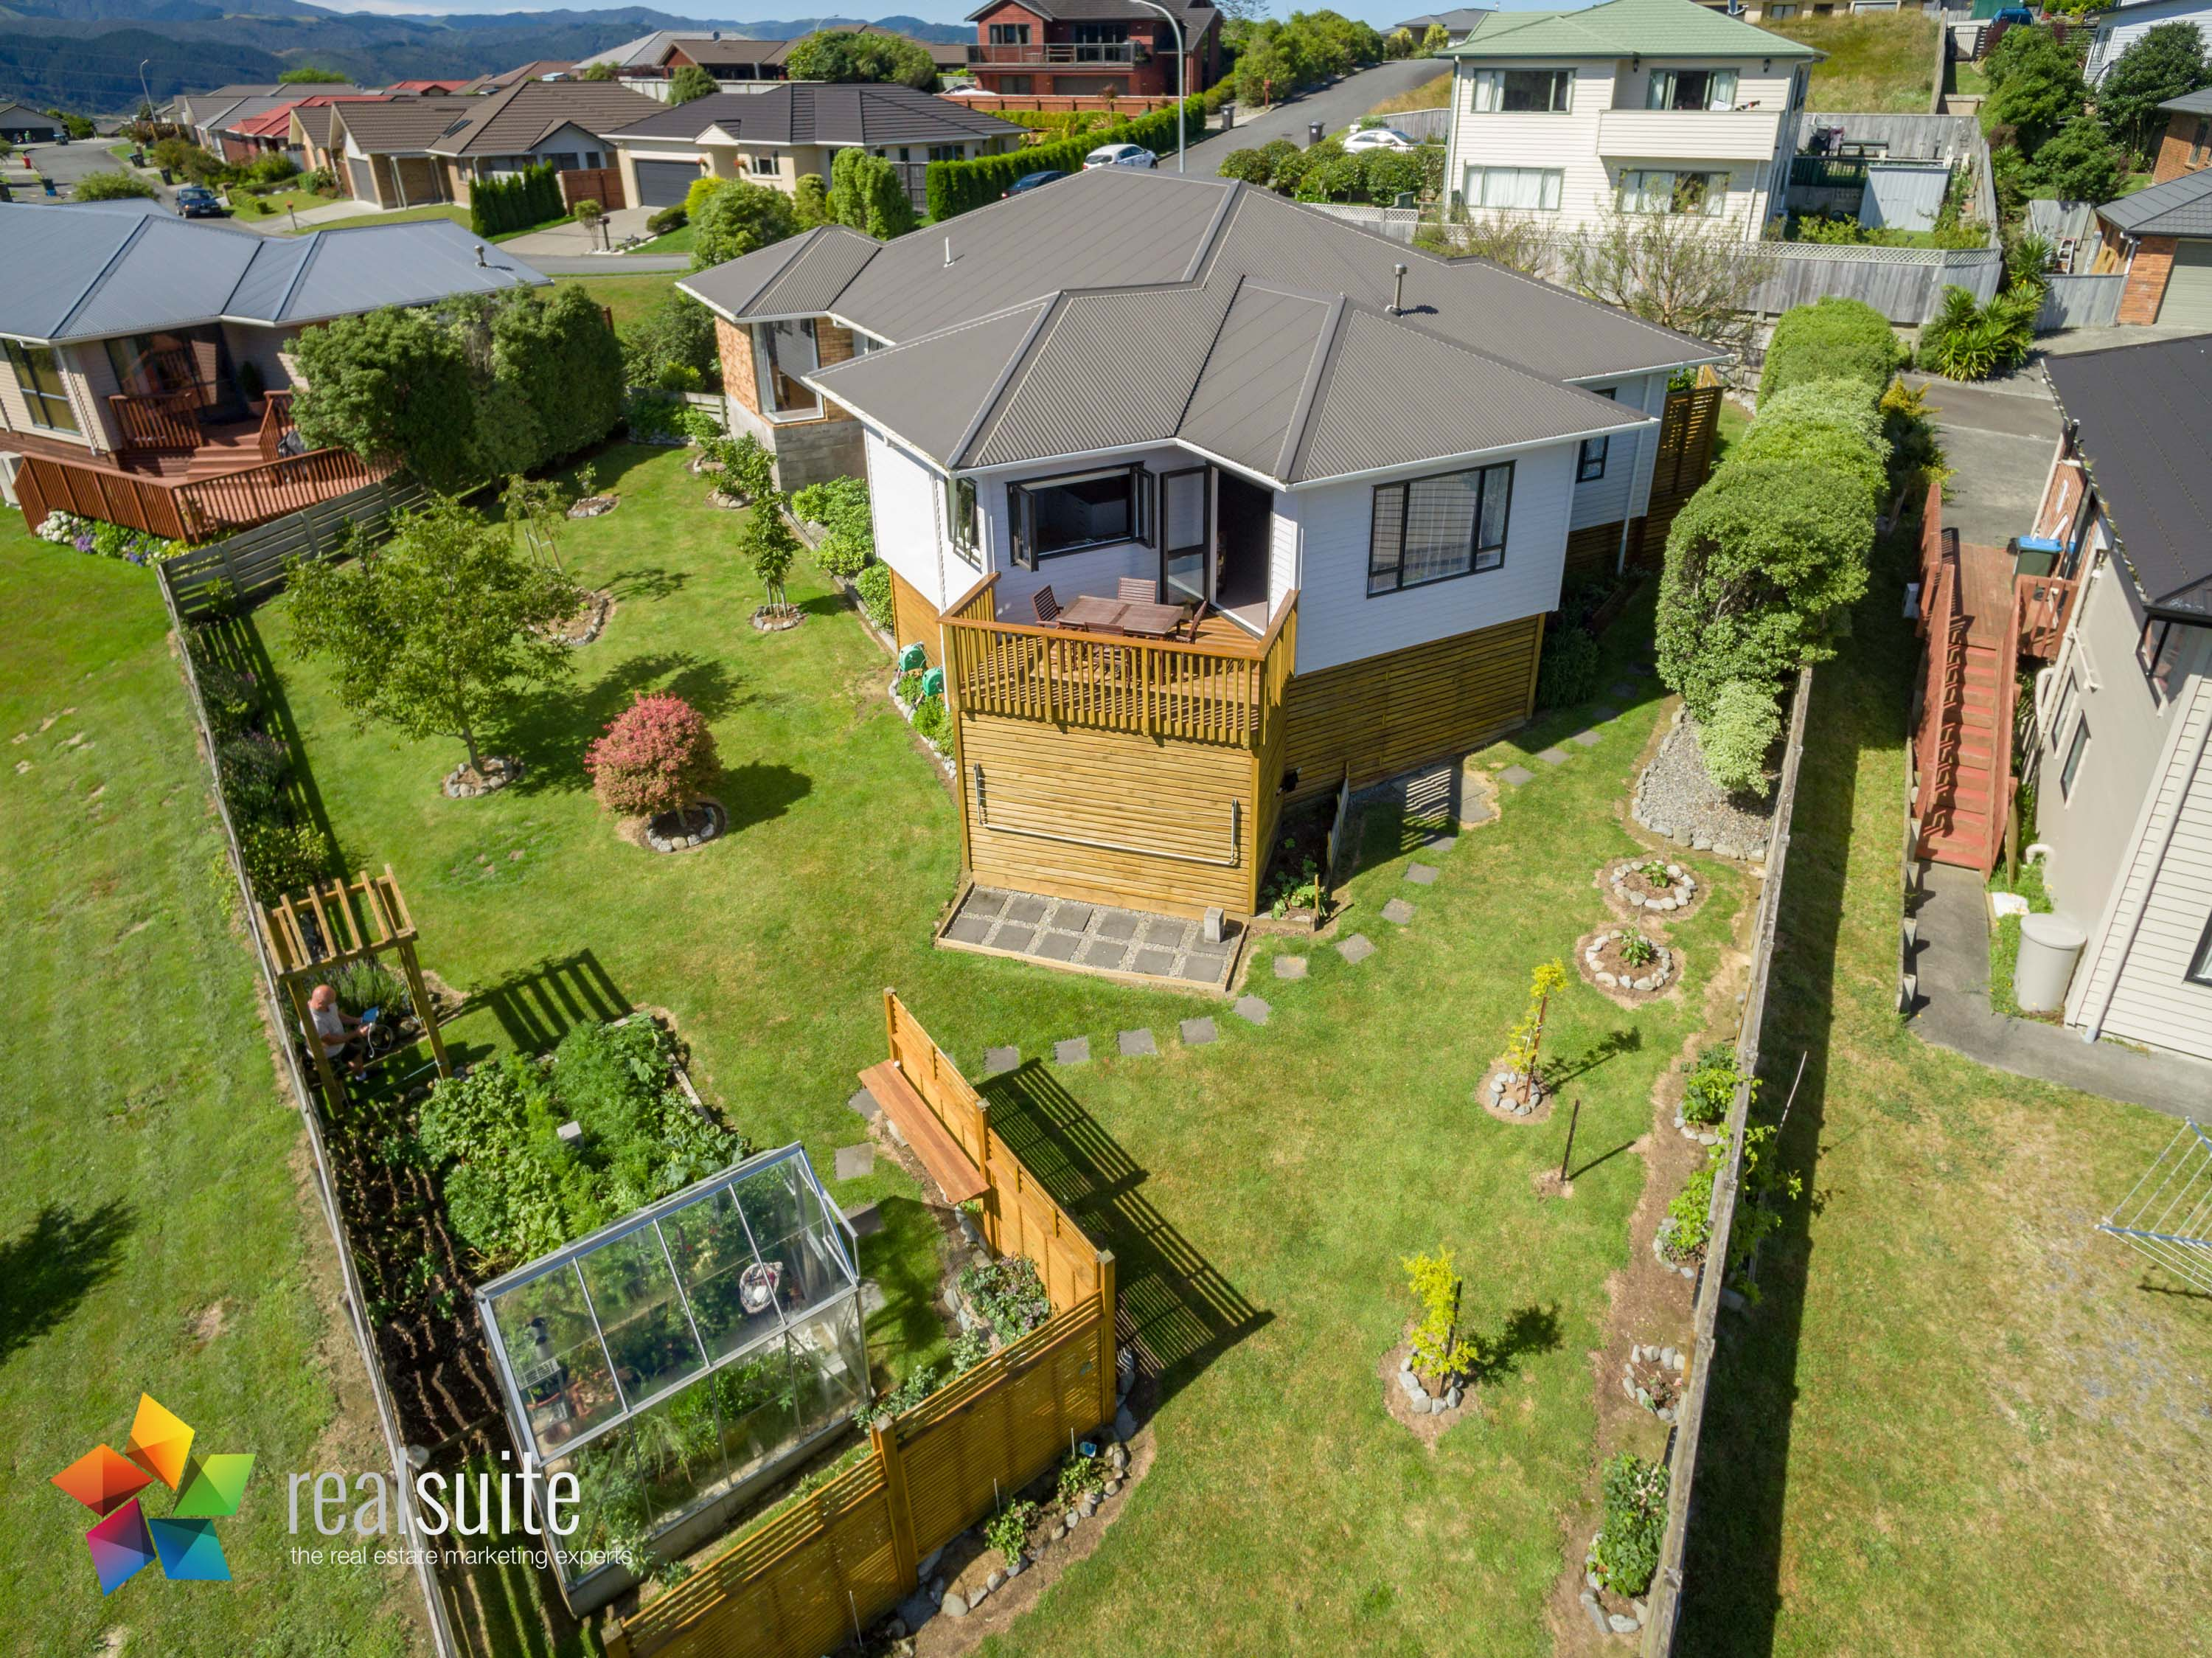 9 McEwen Crescent, Riverstone Terraces Aerial 0373